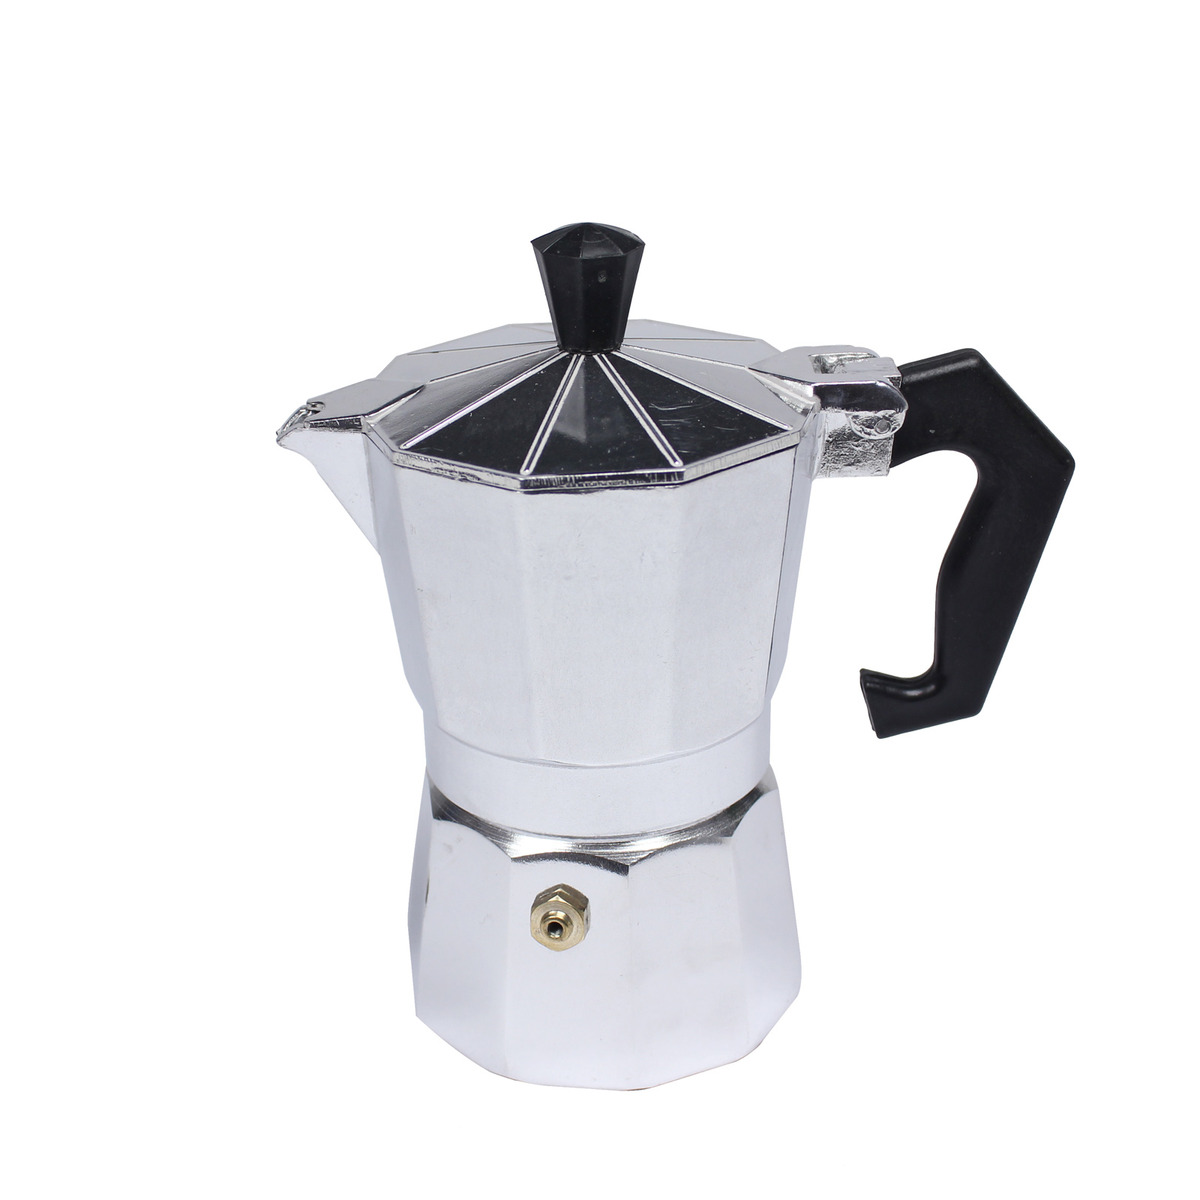 Coffee Maker One Cup Or Pot : 1 Cup stove Expresso Coffee Maker percolator MOKA POT +EXTRA GASKET HJ361A eBay